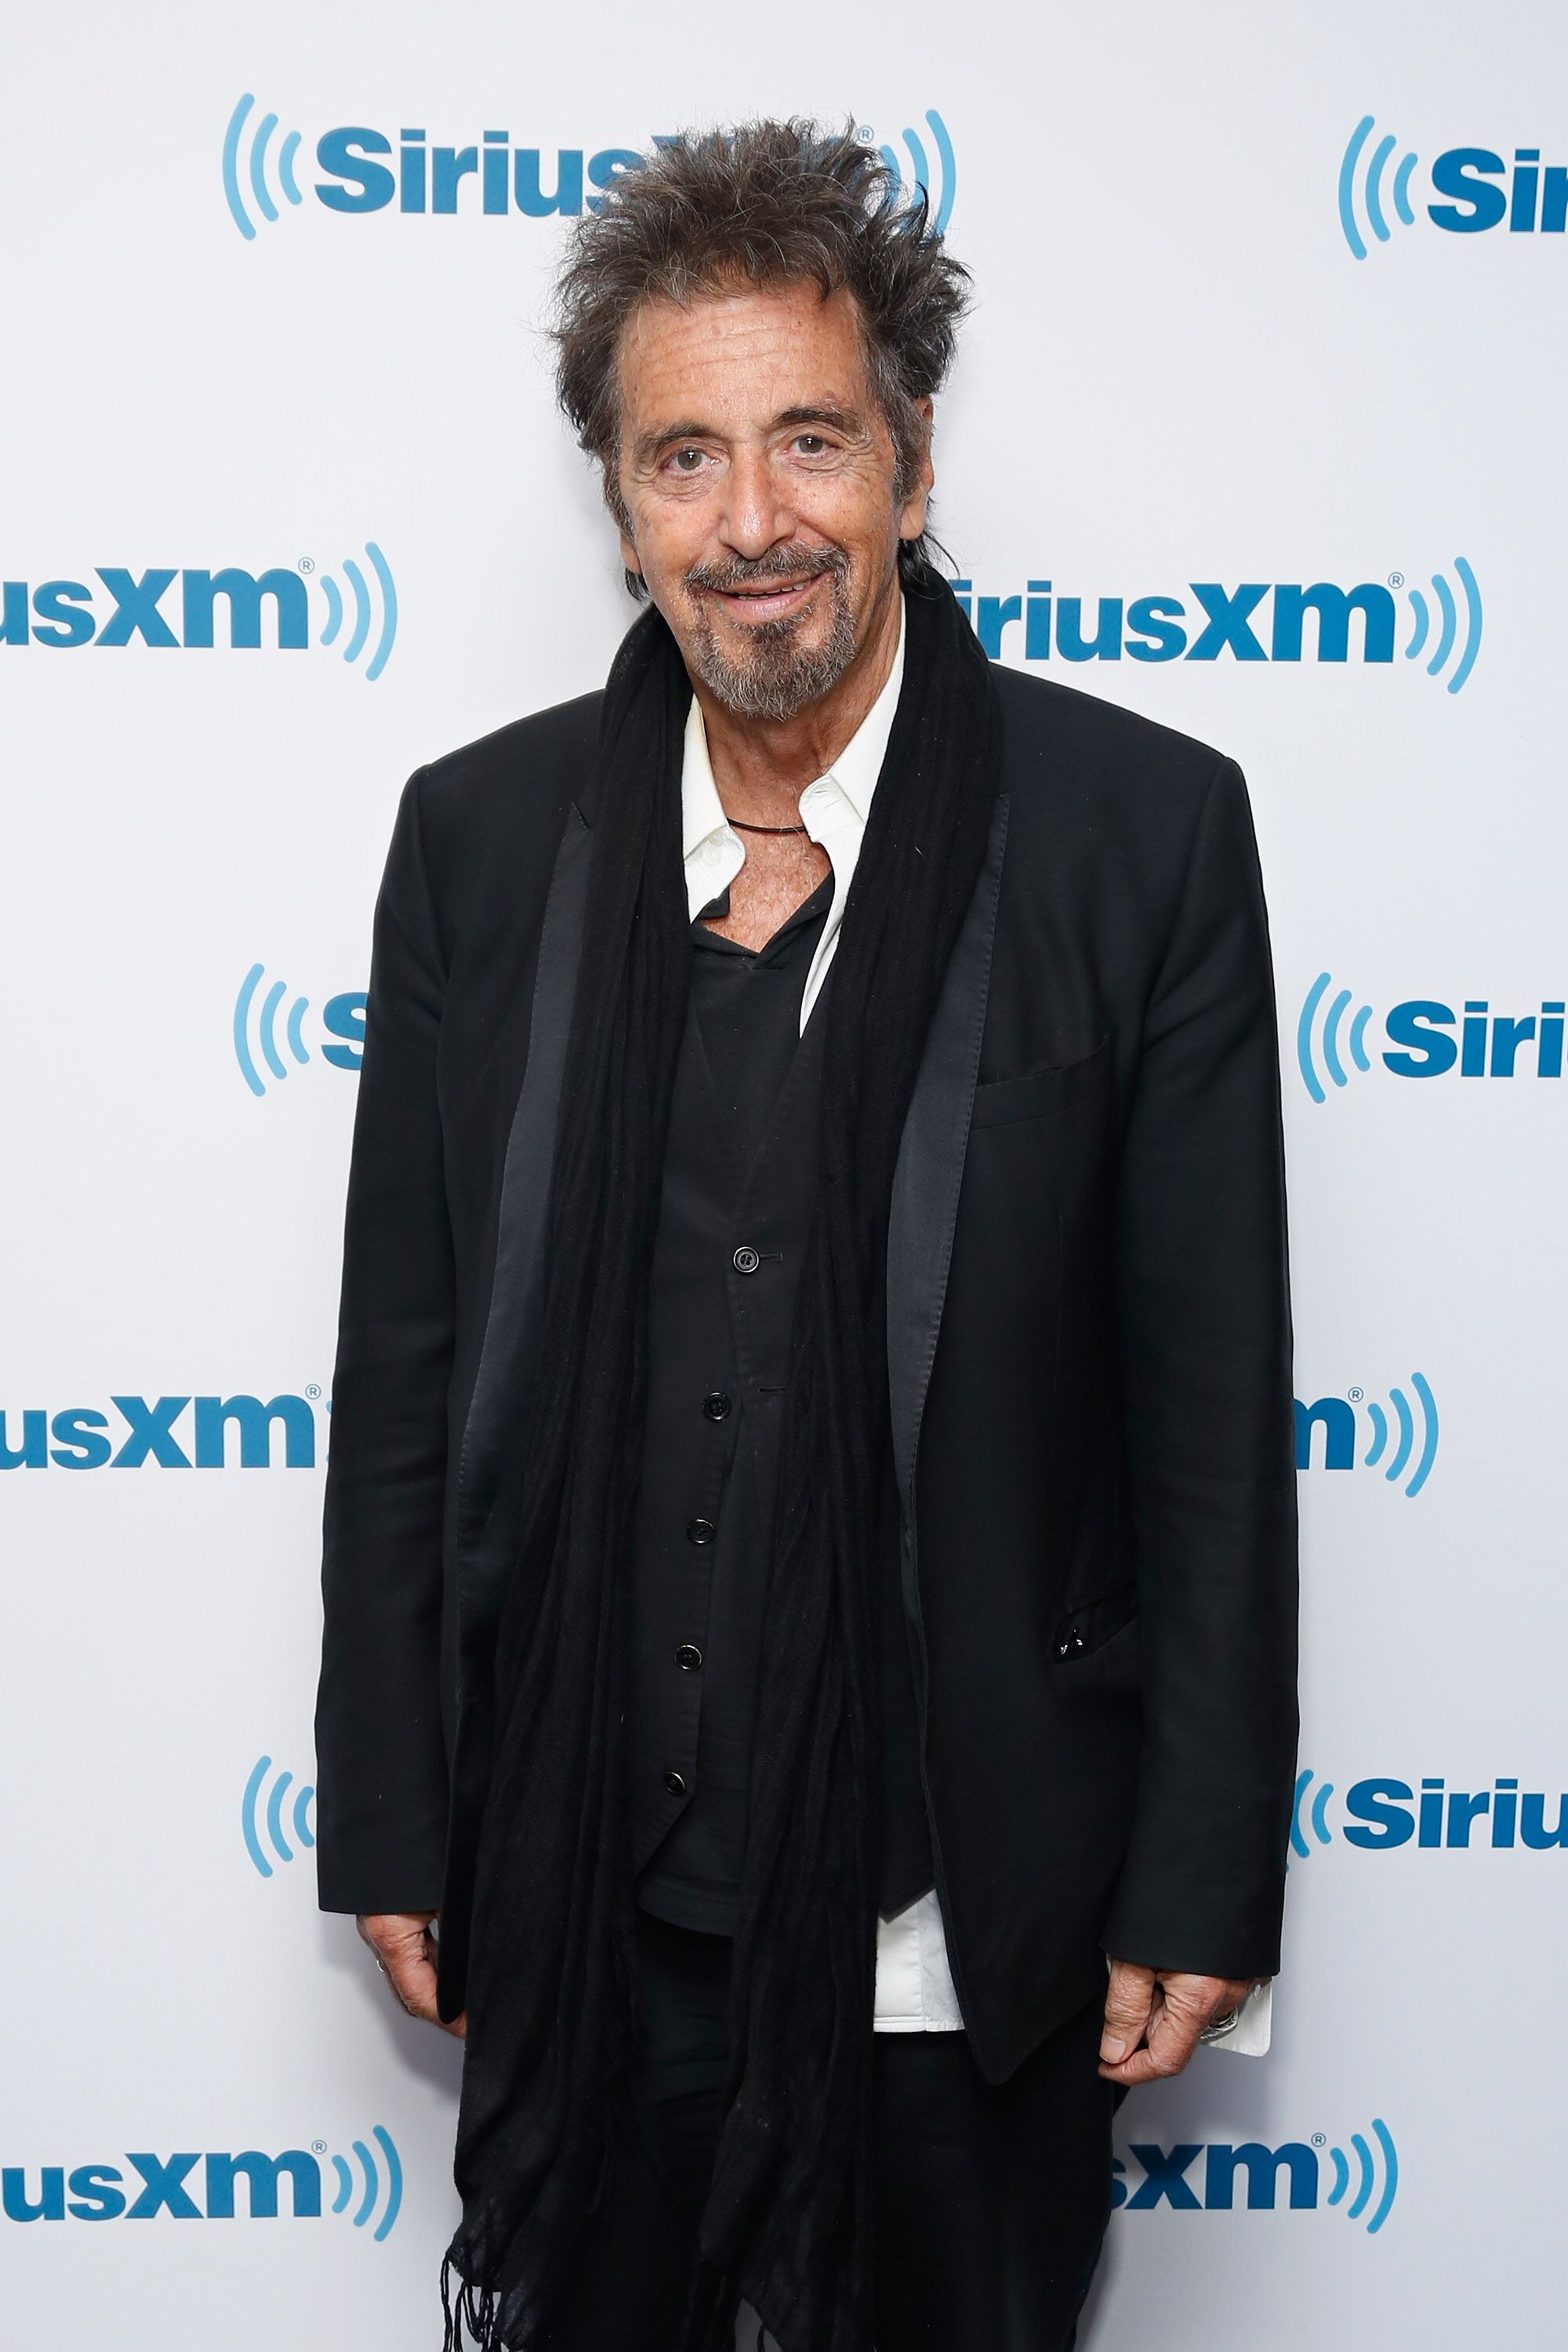 Al Pacino. I Image: Getty Images.